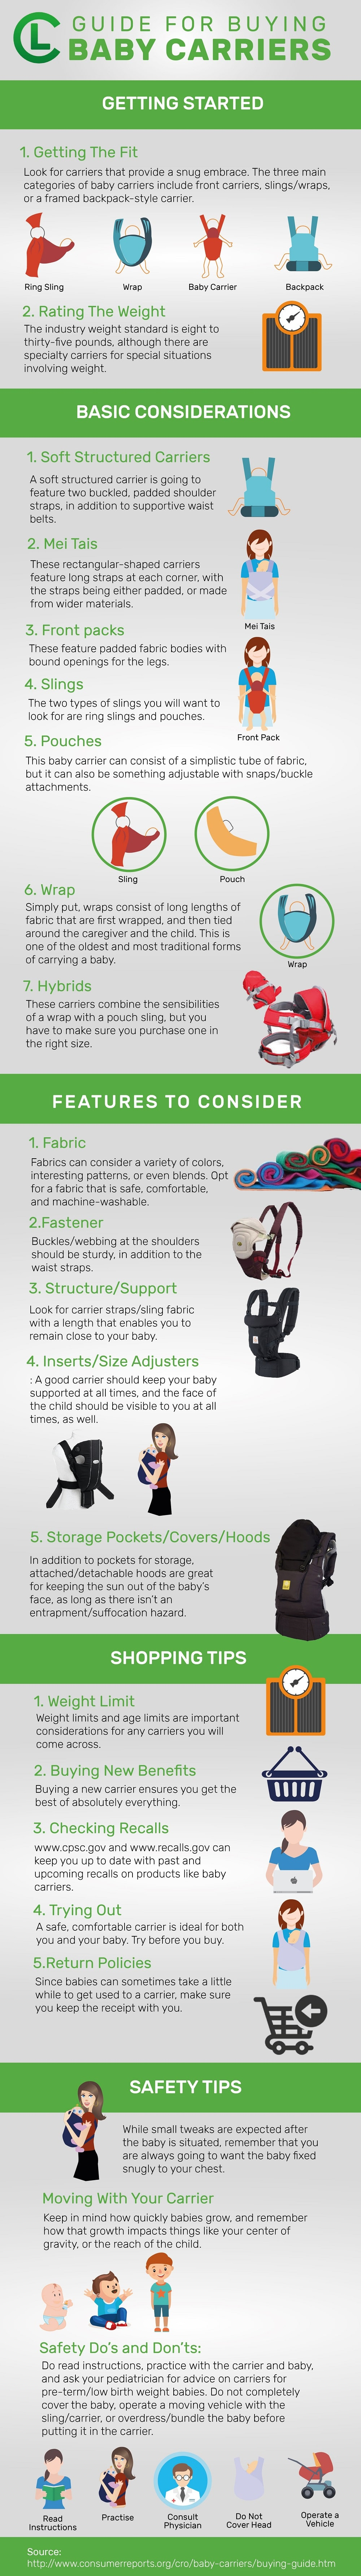 Guide For Buying Baby Carriers Infographic